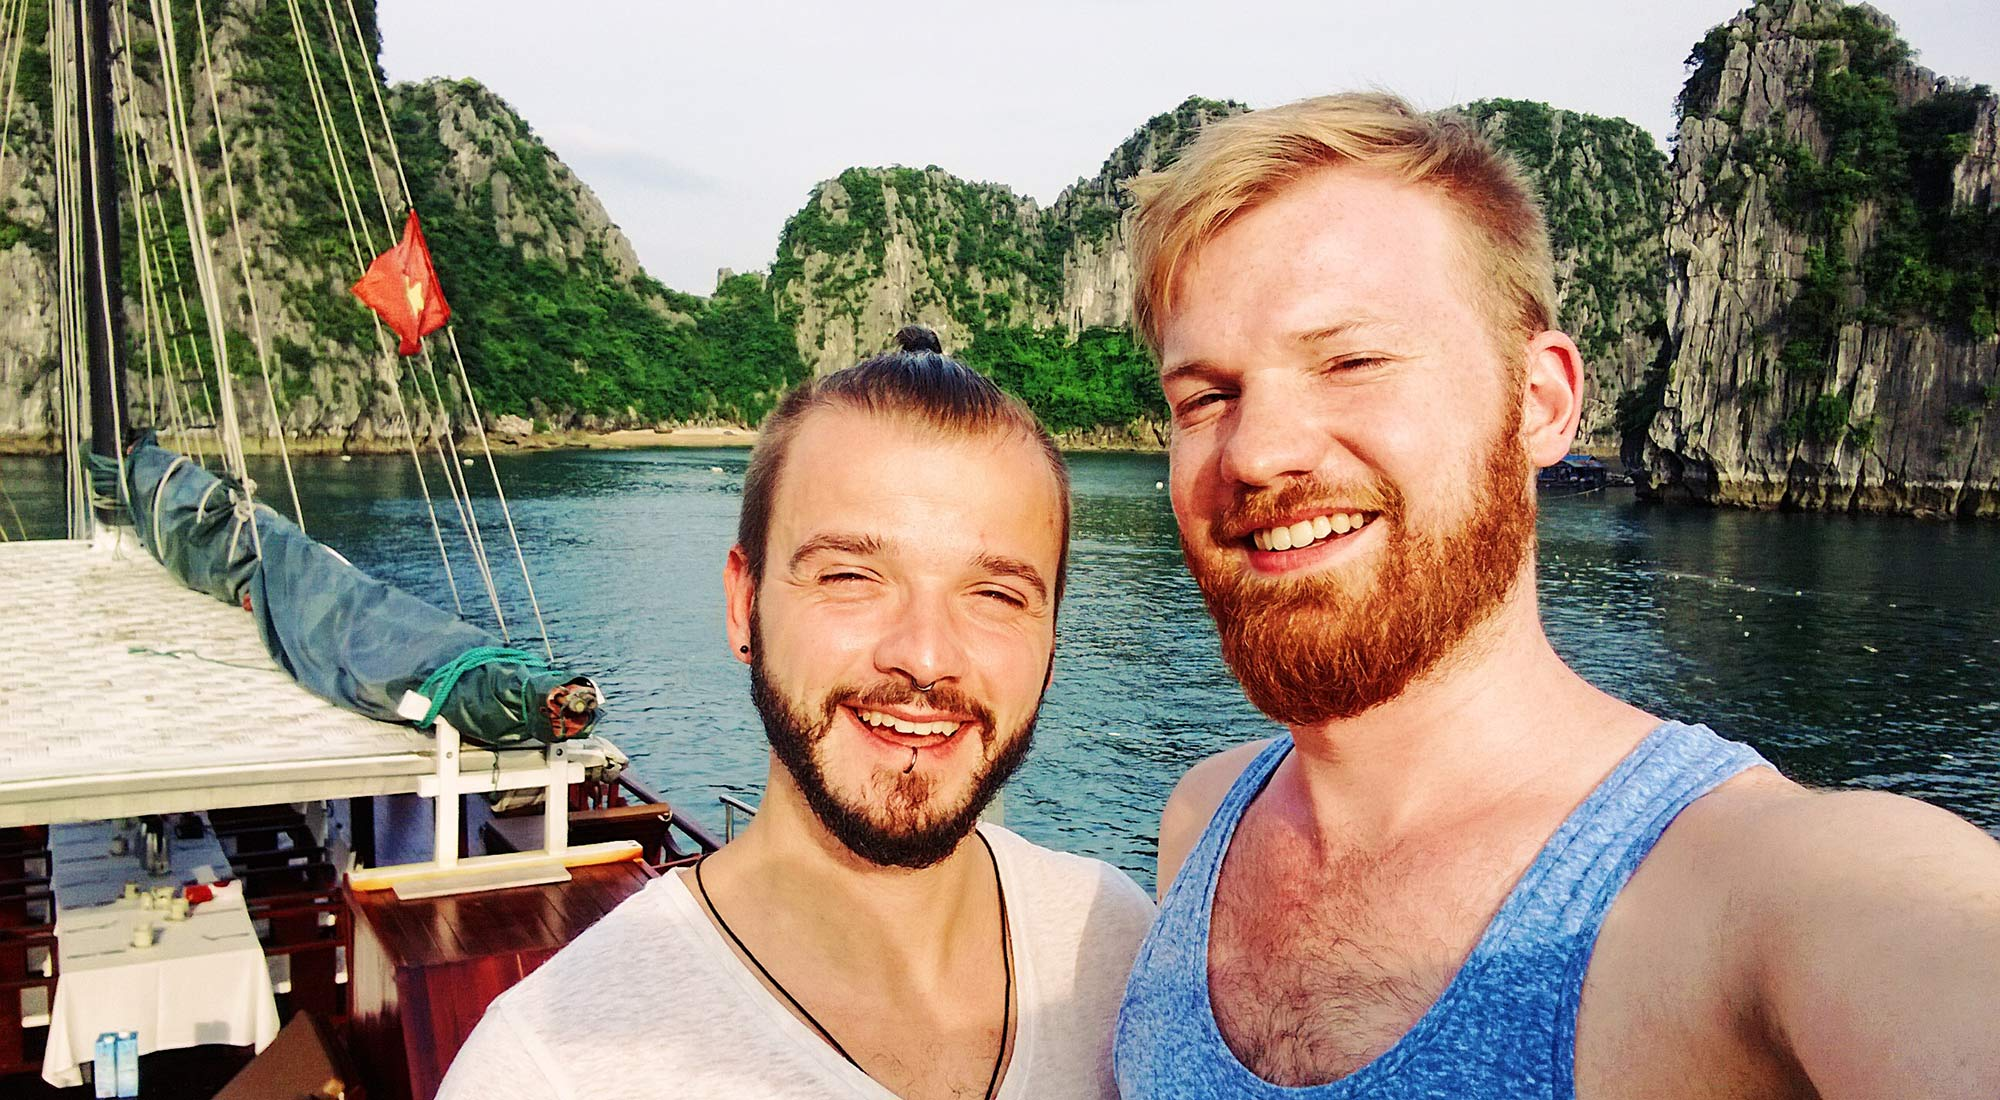 Gay Travel Blogger Karl & Daan on a Halong Bay Cruise | Top Highlights Best Photos Gay Couple Travel Vietnam © CoupleofMen.com